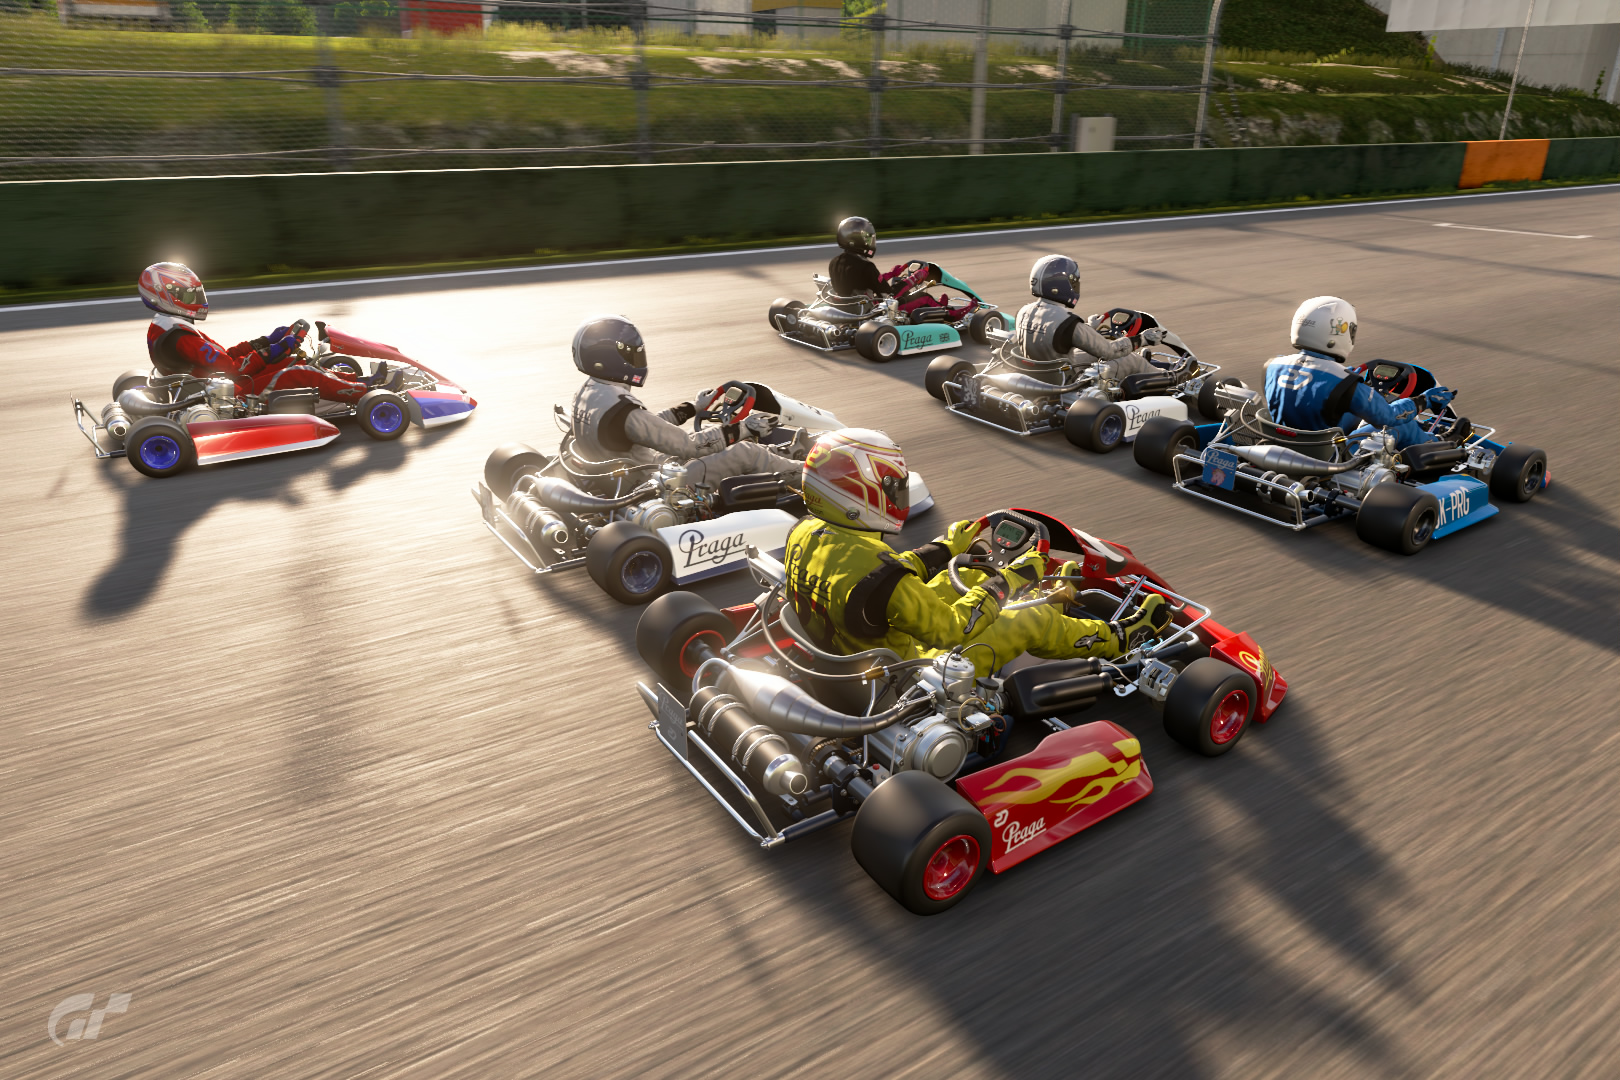 Praga launches online sim karting campaign: seeks driver to experience real R1 race car